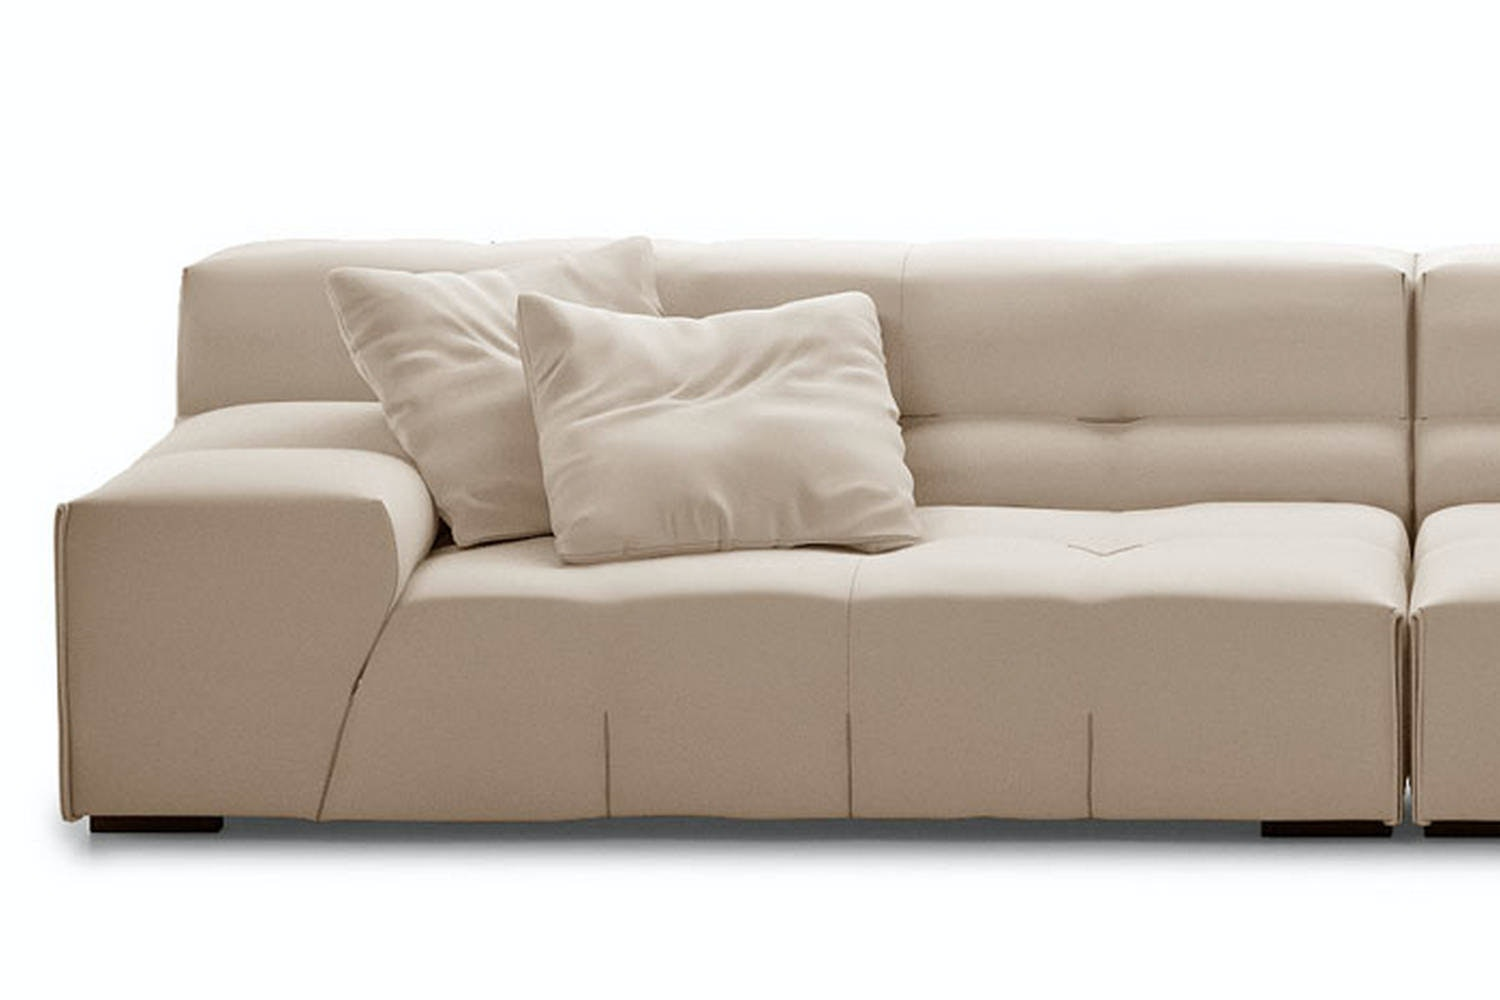 Tufty-Too Sofa with Right Chaise by Patricia Urquiola for B&B Italia